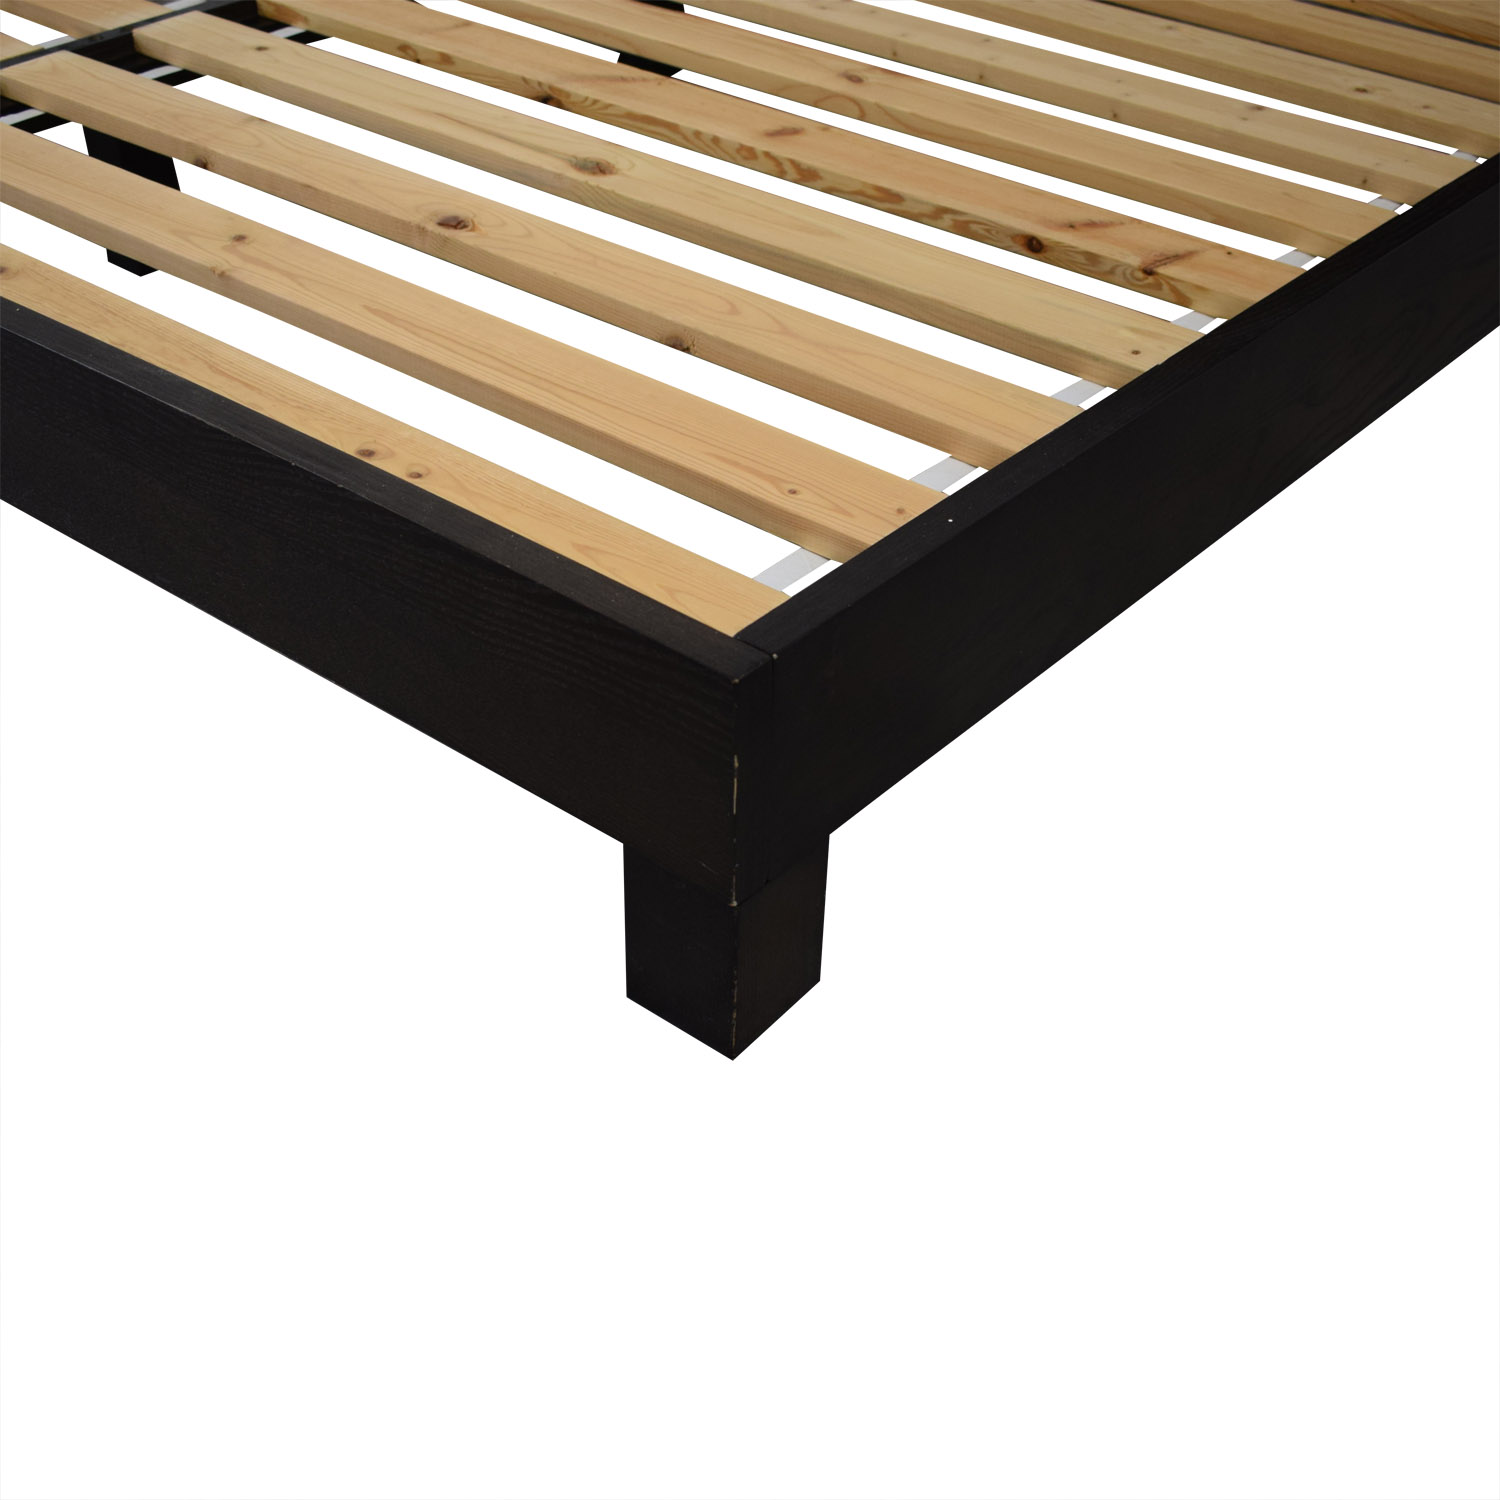 West Elm West Elm Inlay King Bed dimensions